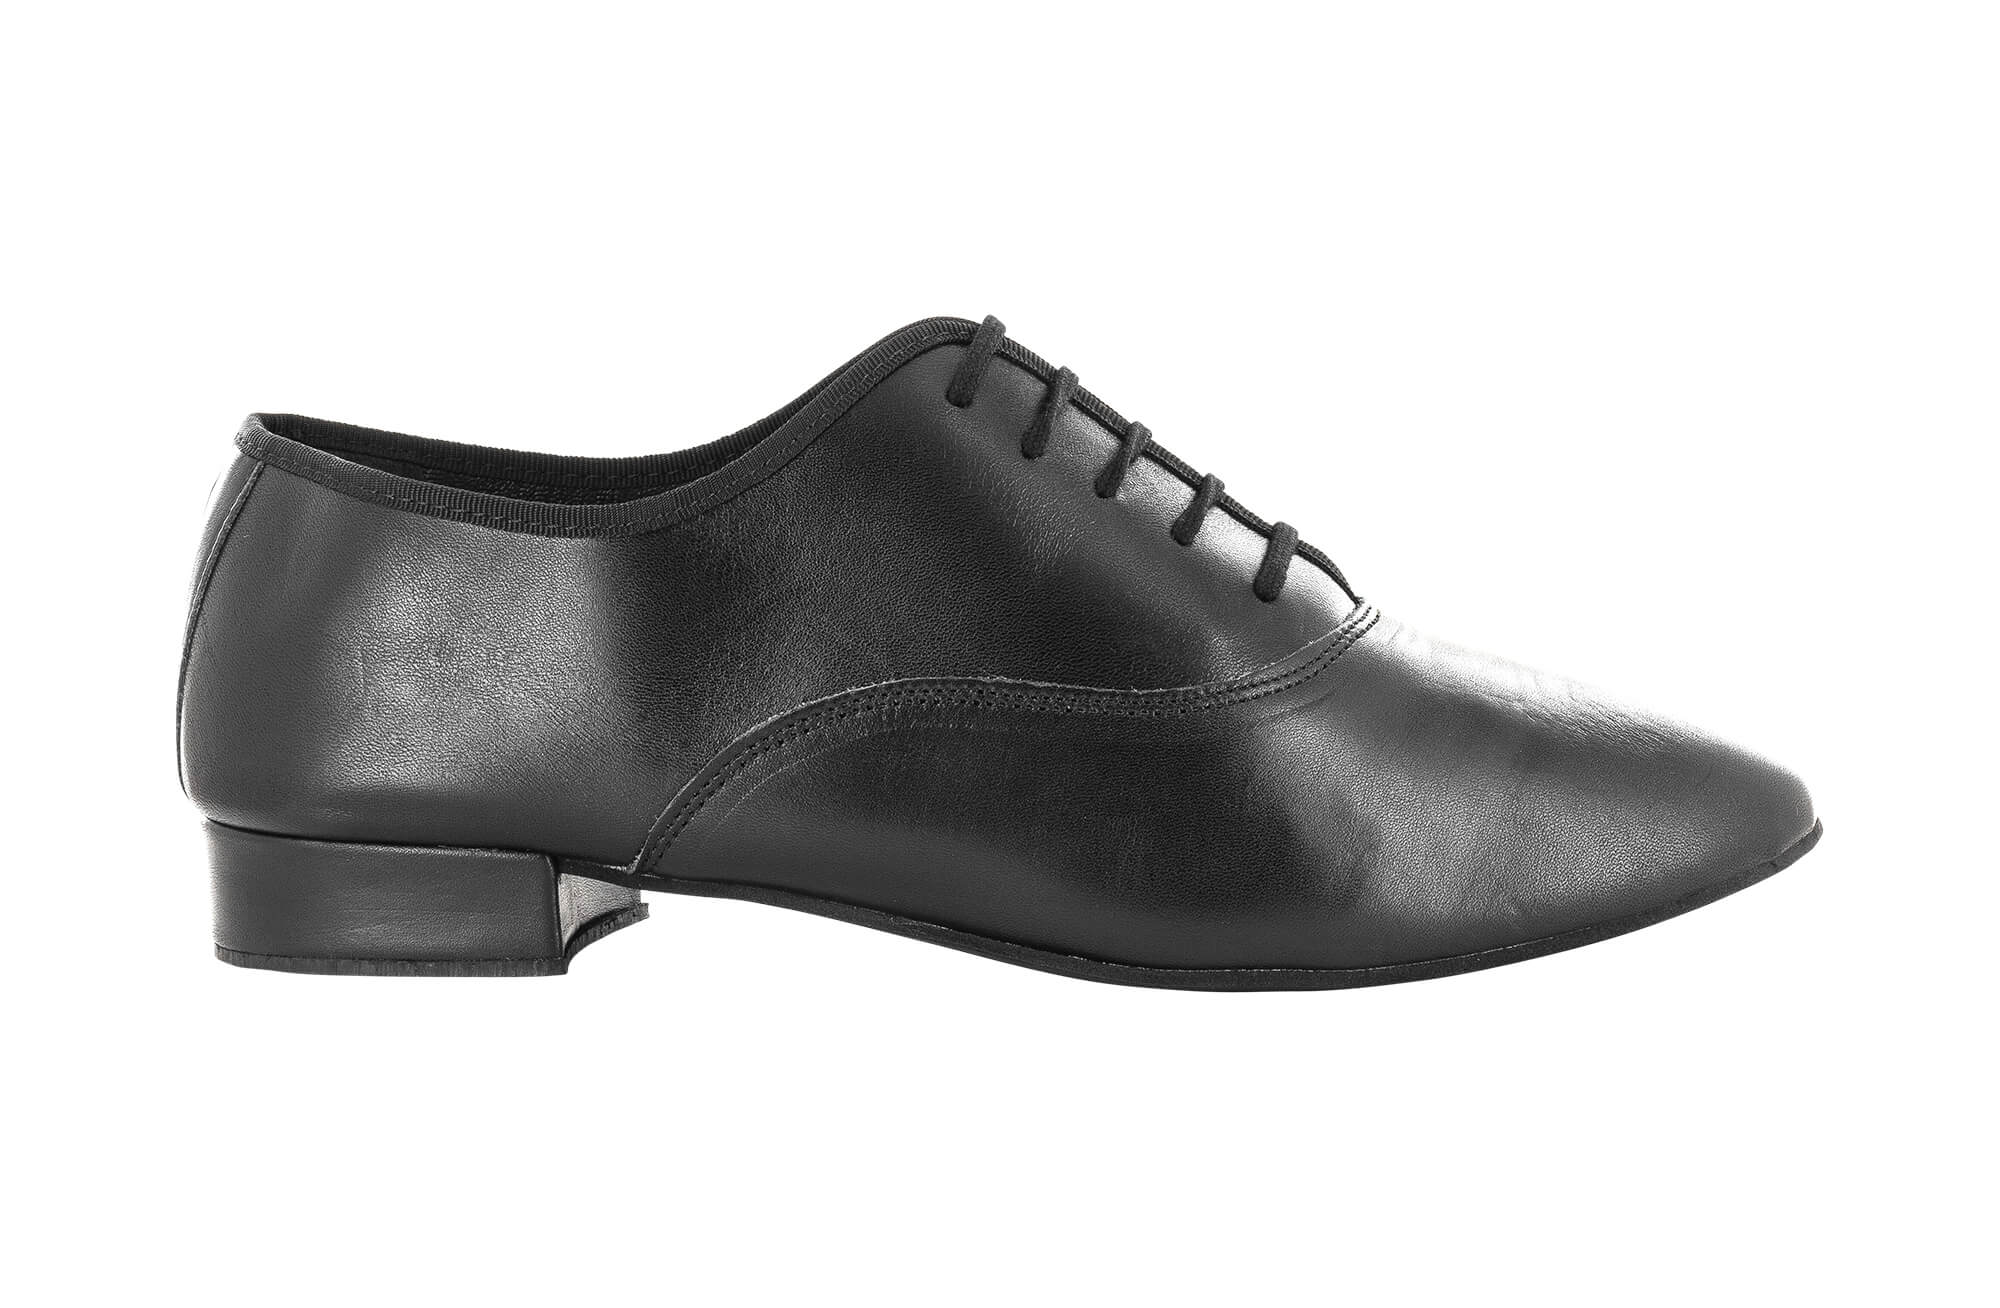 brand new 8ee26 2a6c1 dancing shoes for men oxford jazz in black leather with laces heel 2,5 cm -  Dancin scarpe da ballo